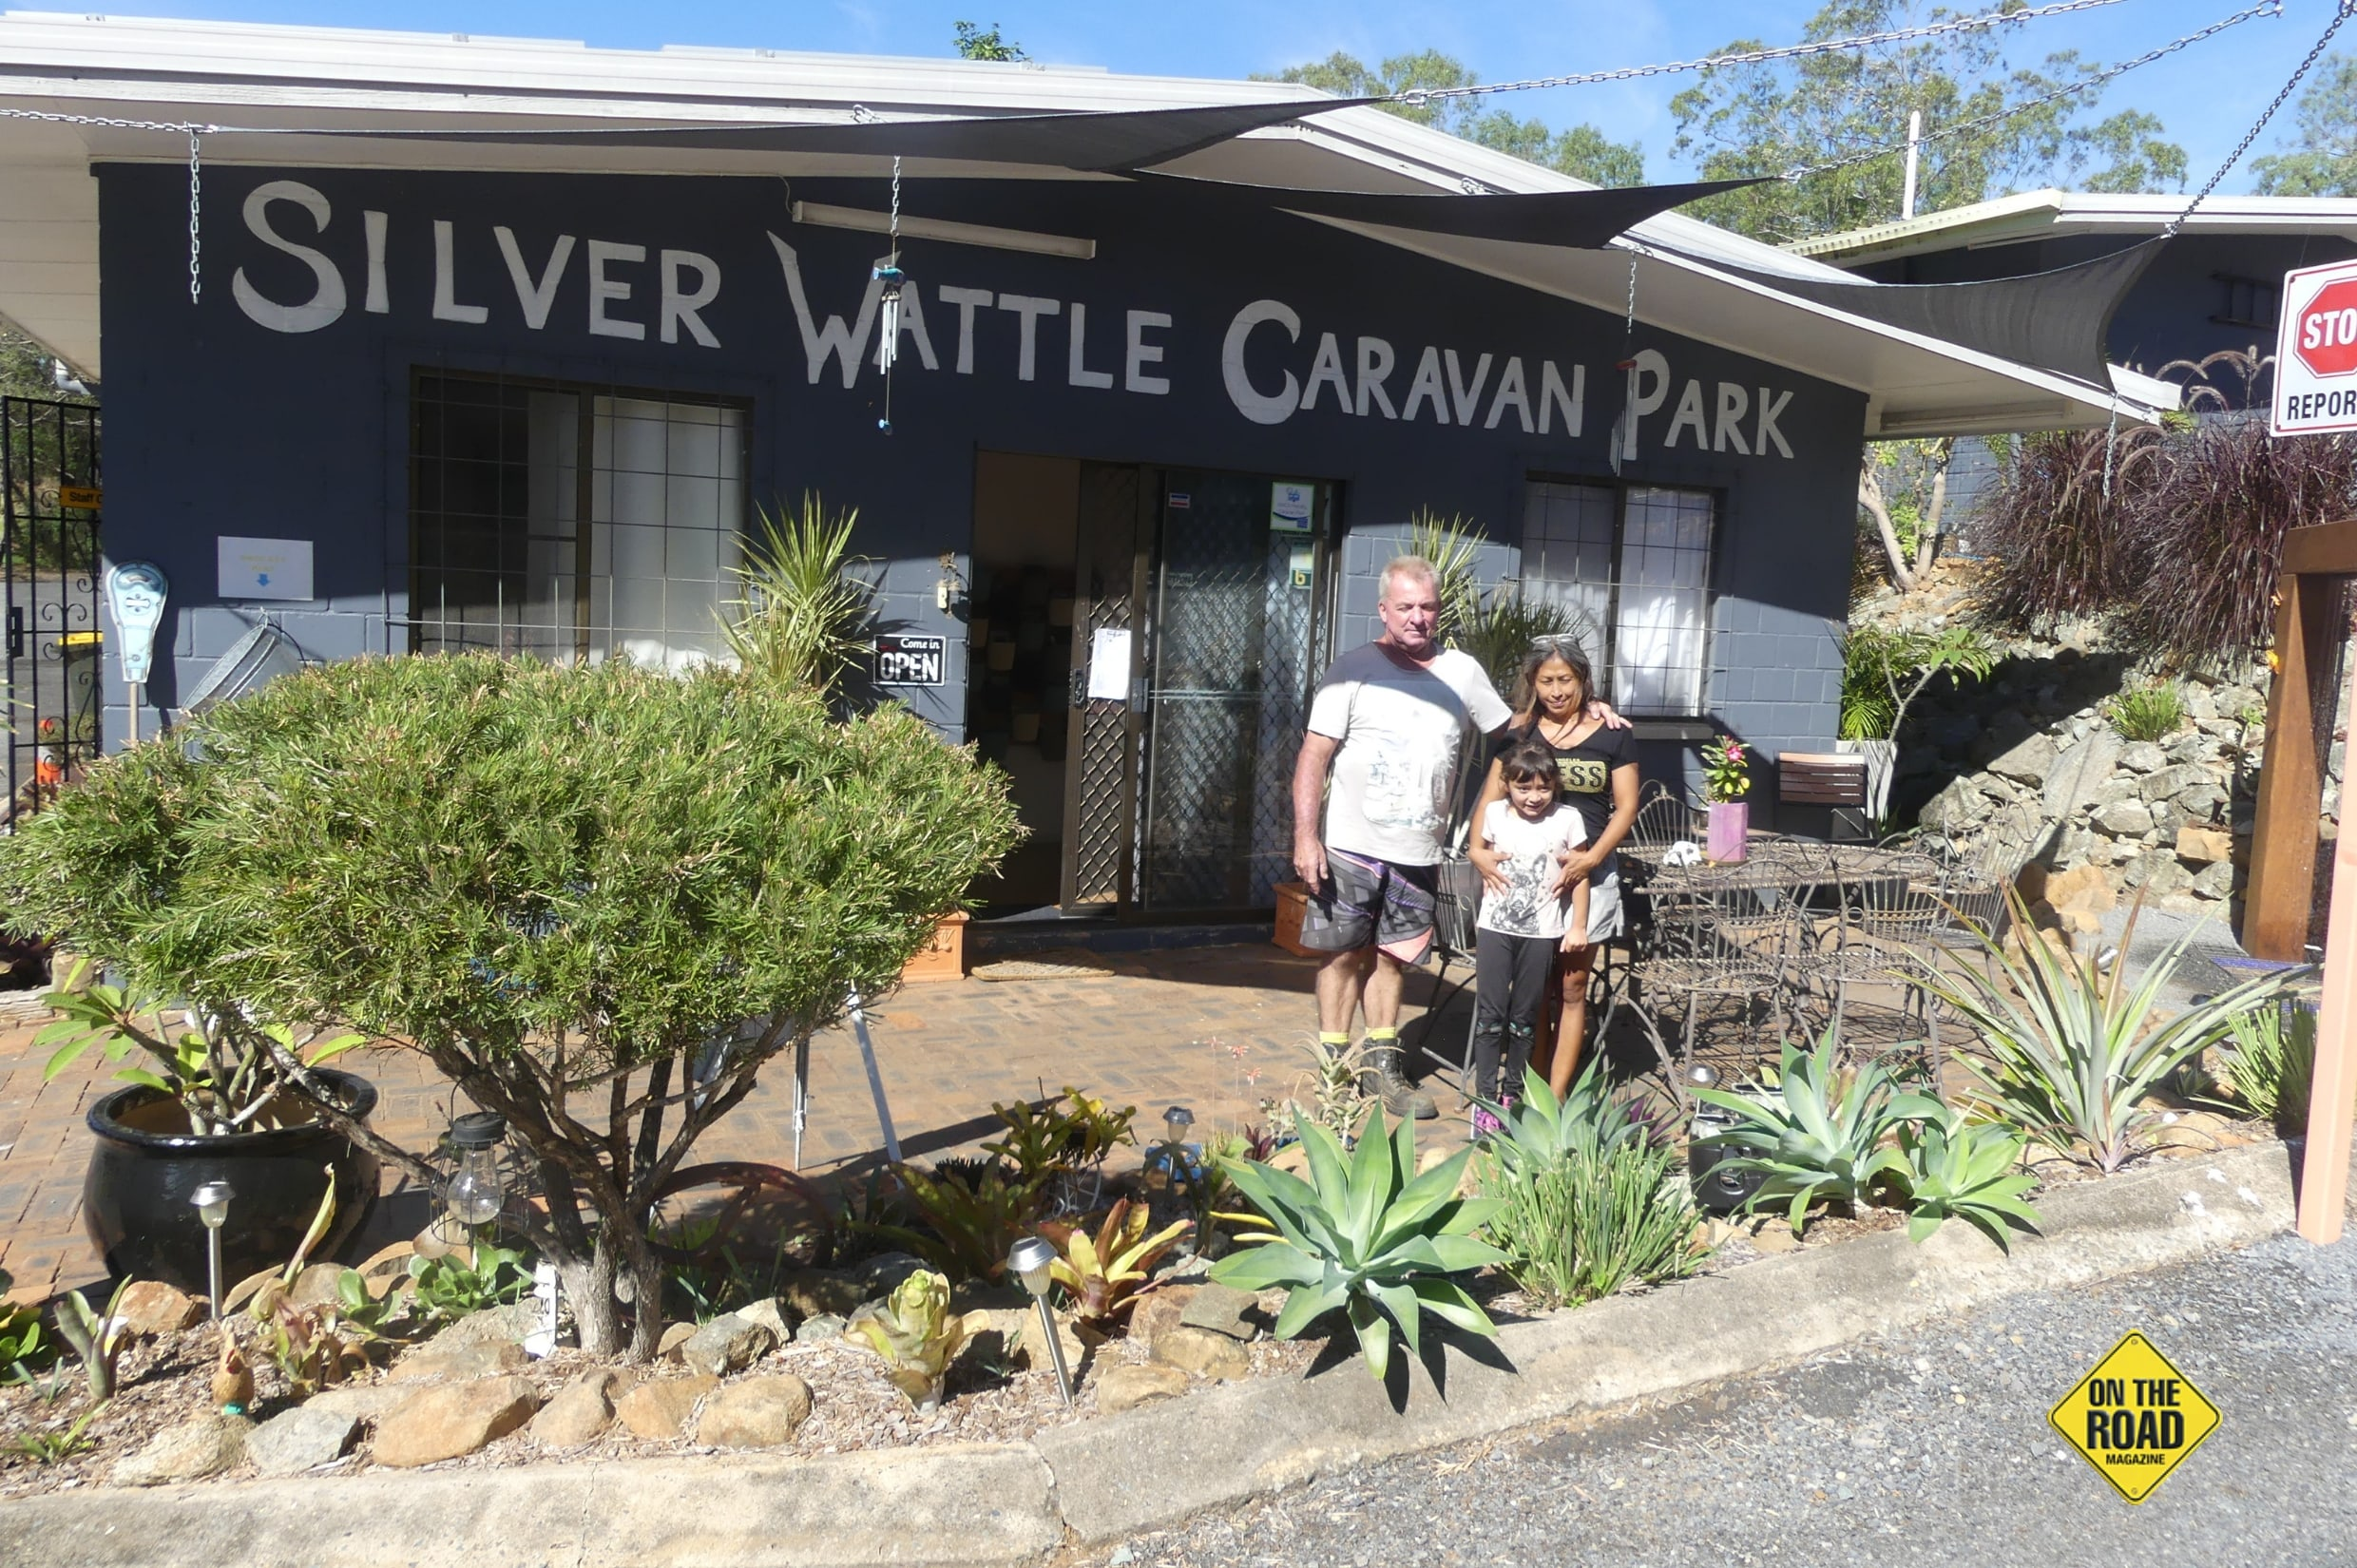 David and Debi Brant decided to call the Silver Wattle Caravan Park home.